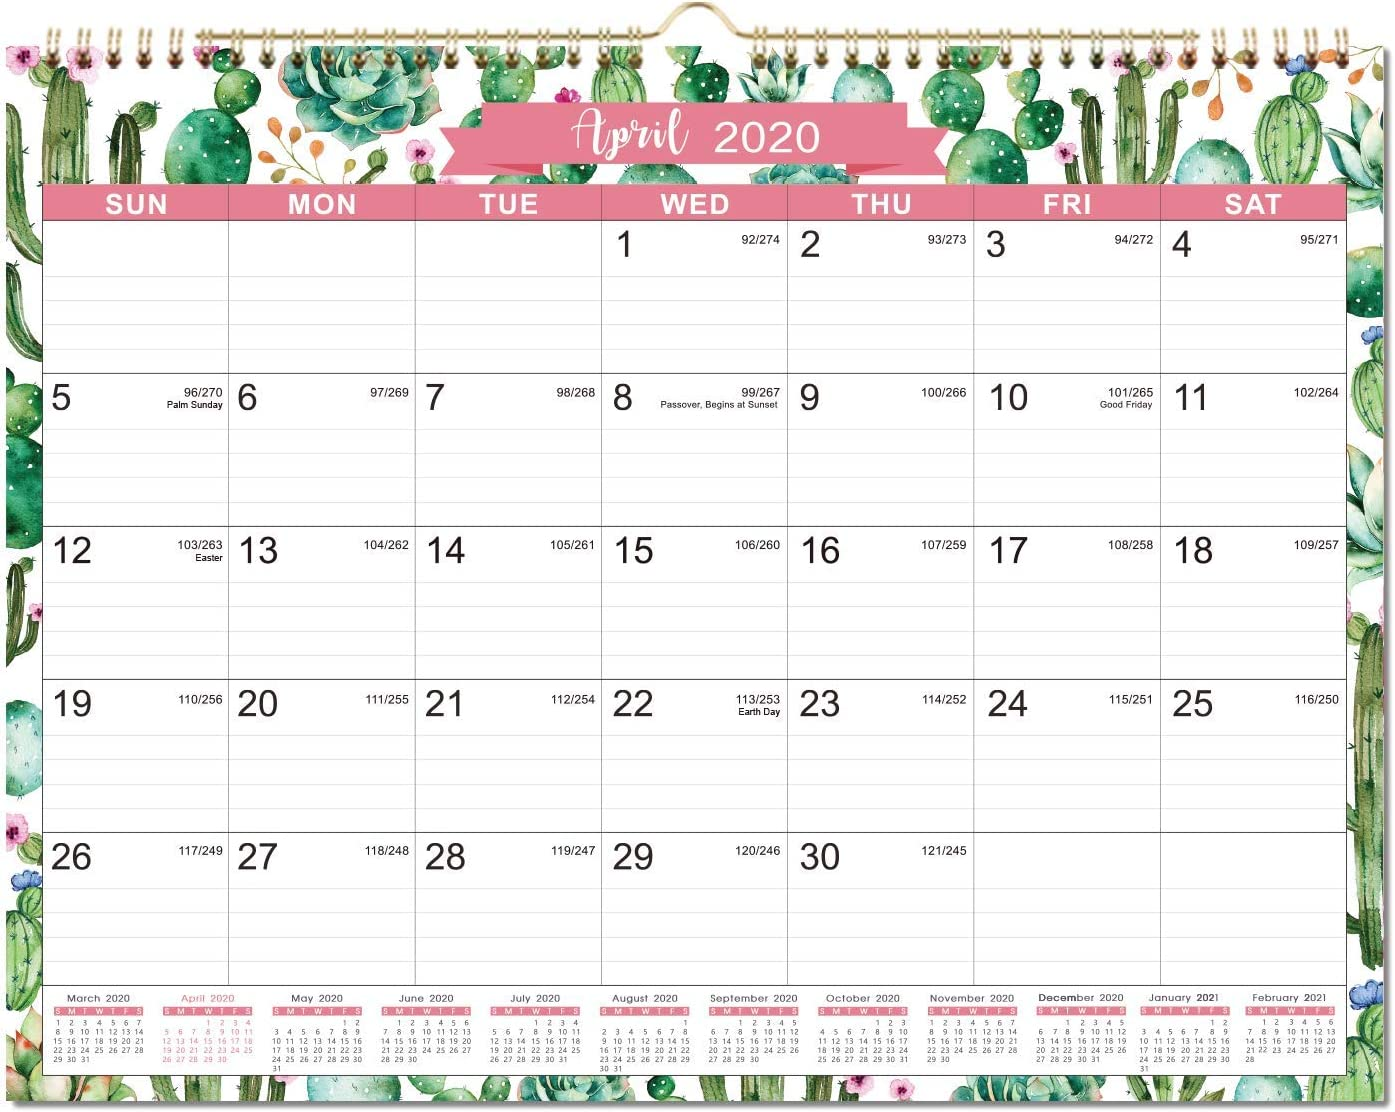 "2020 Calendar - 2020 Monthly Wall Calendar with Julian Dates, 11.5"" x 15"", Two-Wire Binding, Ruled Blocks Perfect for Planning and Organizing for Home or Office"